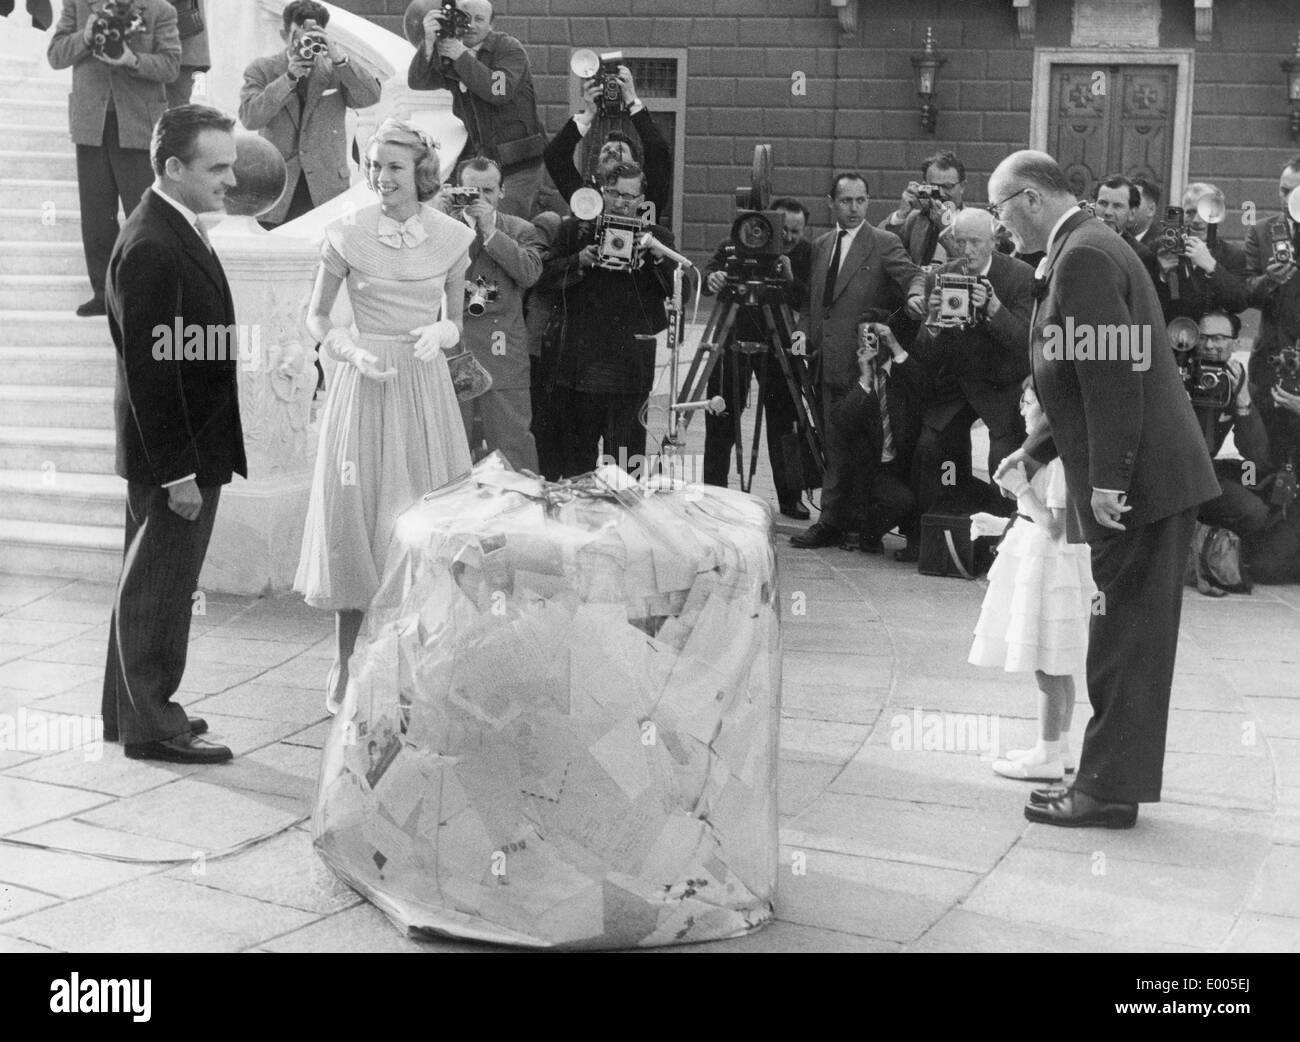 The wedding of Grace Kelly and Prince Rainier III of Monaco, 1956 - Stock Image